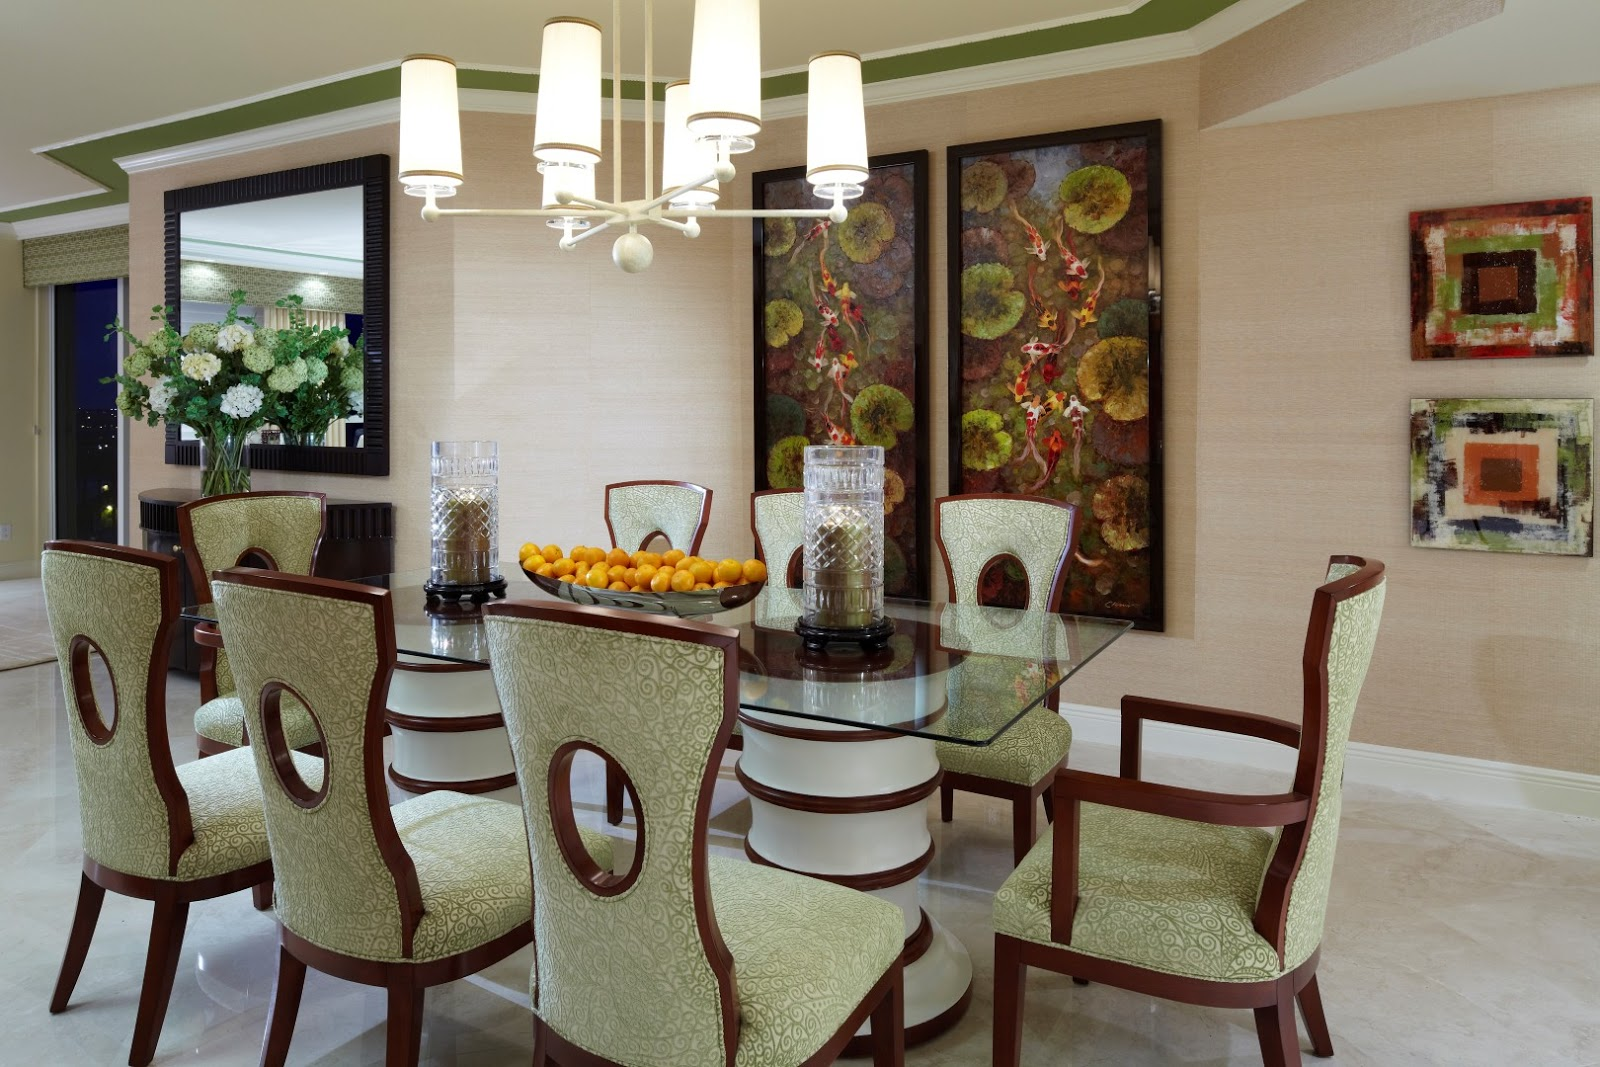 Exclusive Dining Chairs Design Ideas For An Eating When